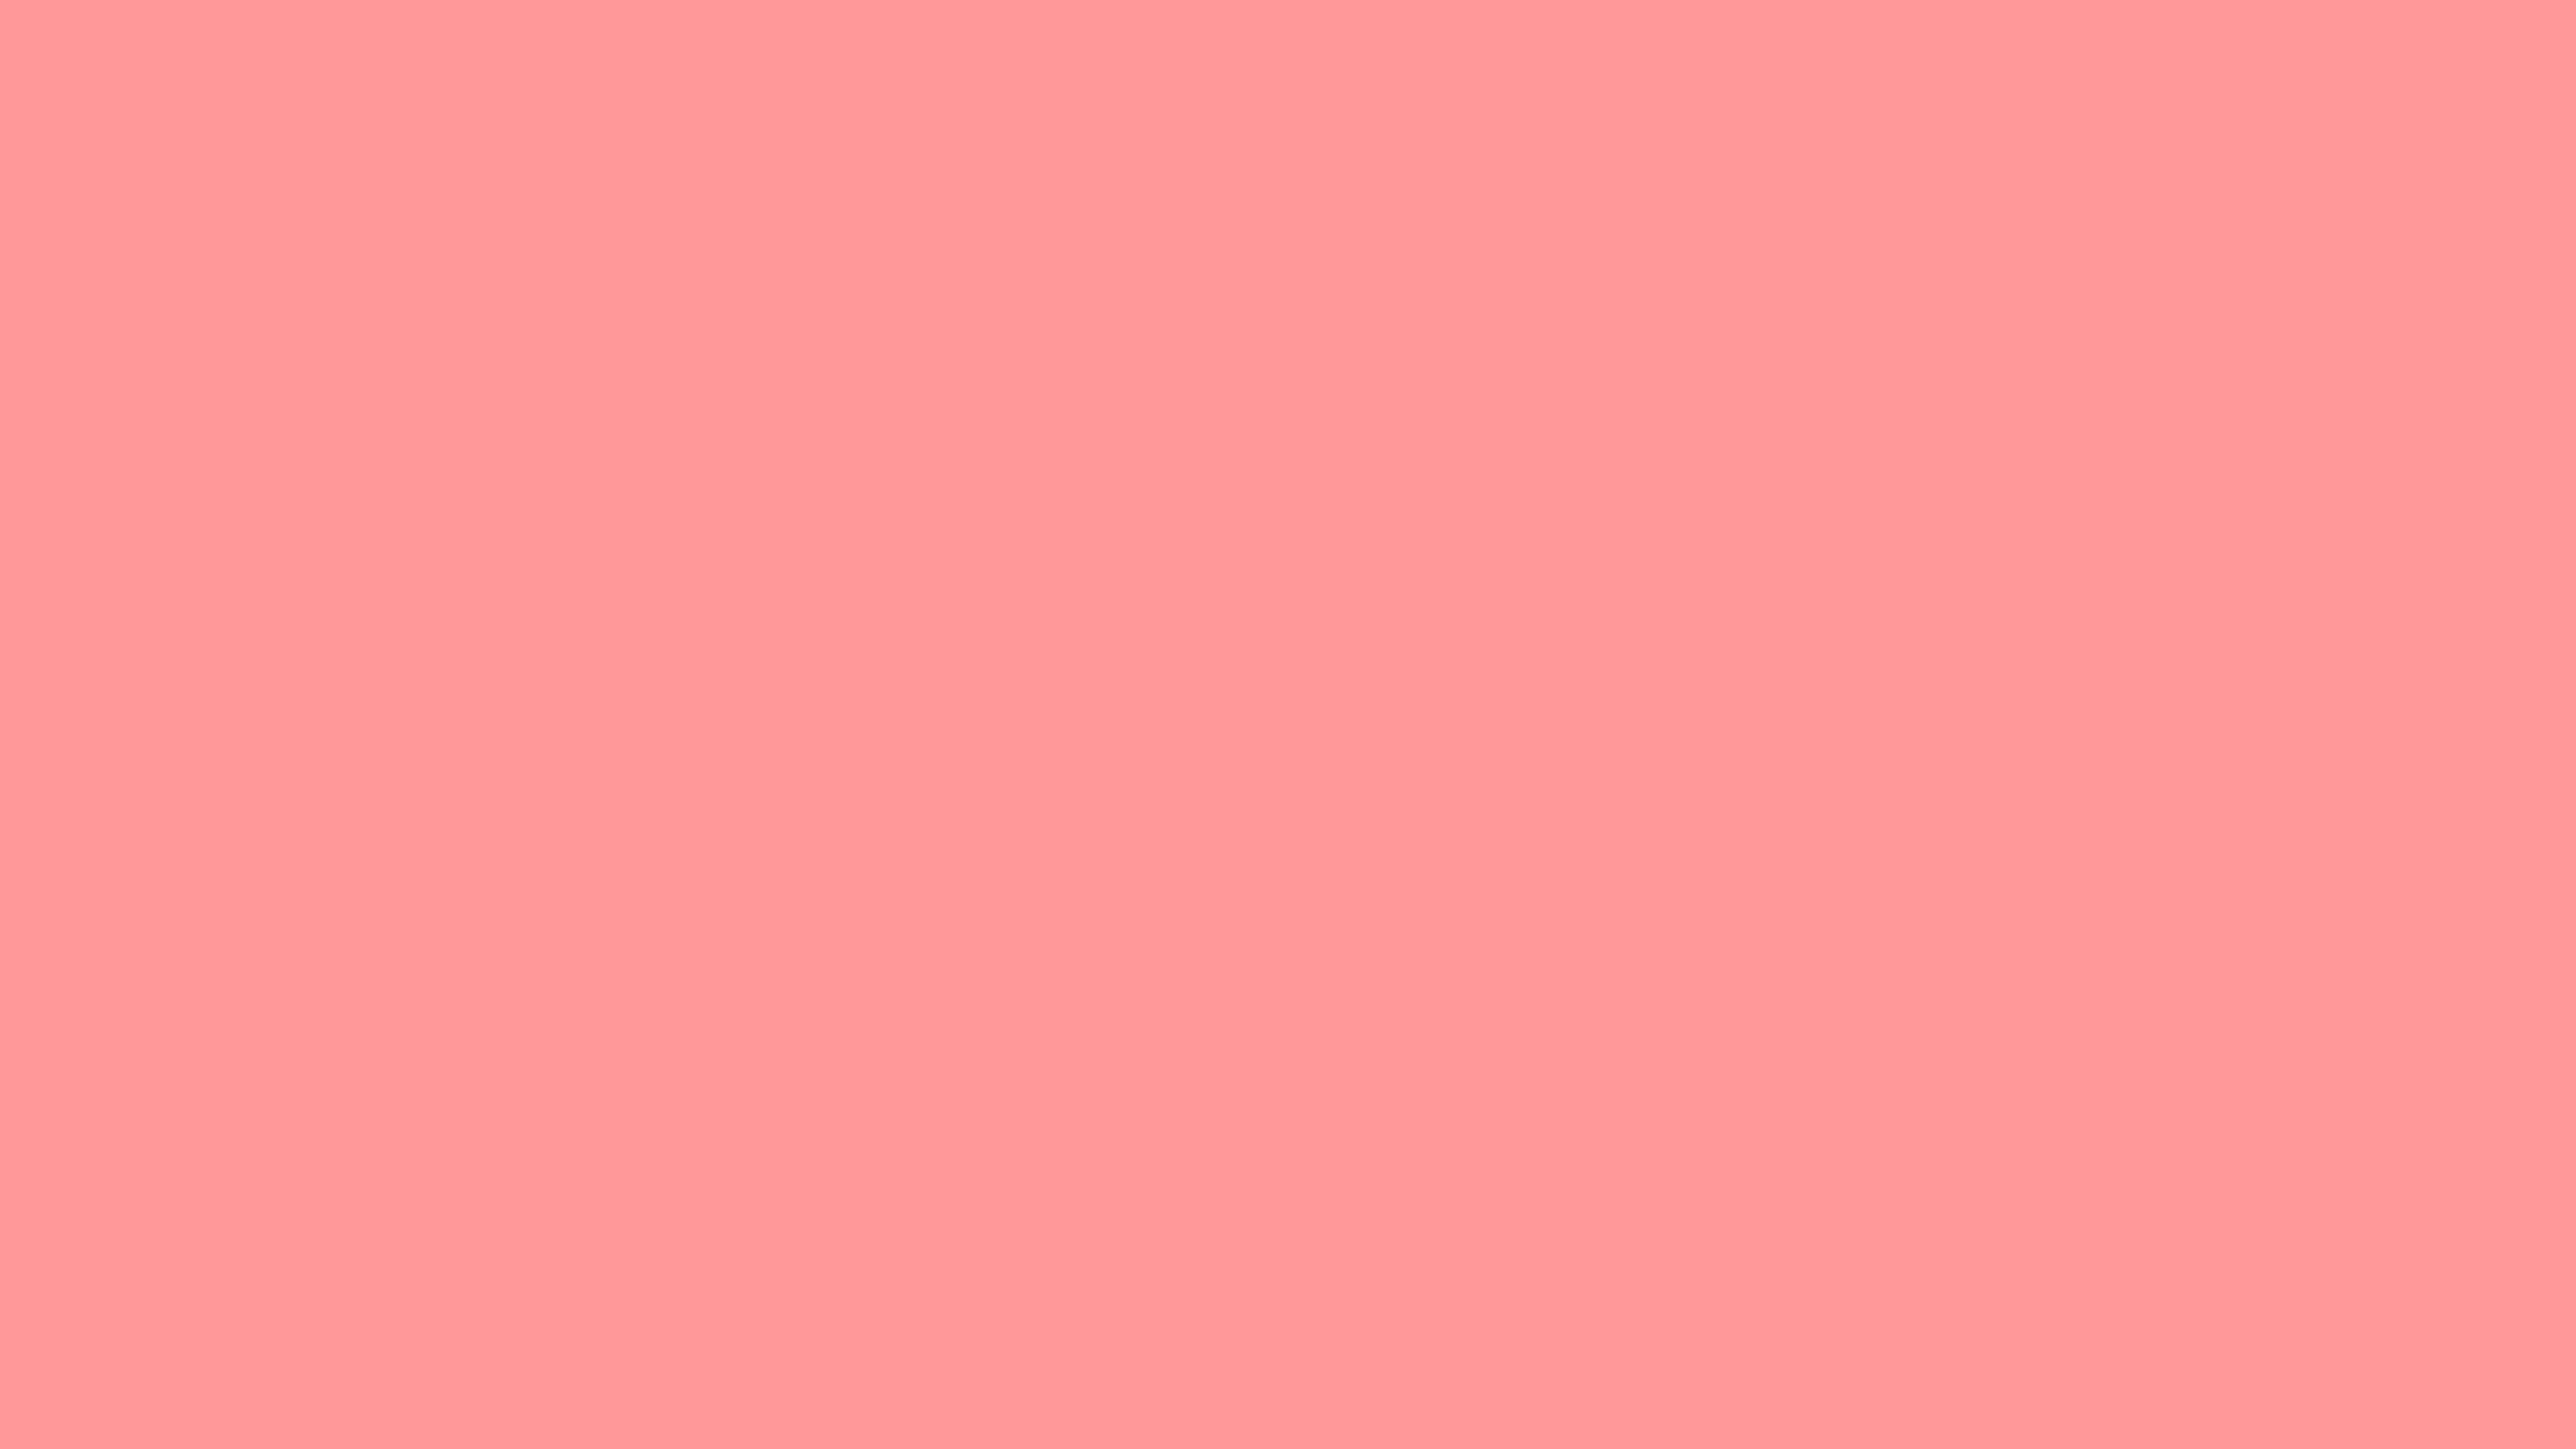 3840x2160 light salmon pink solid color background